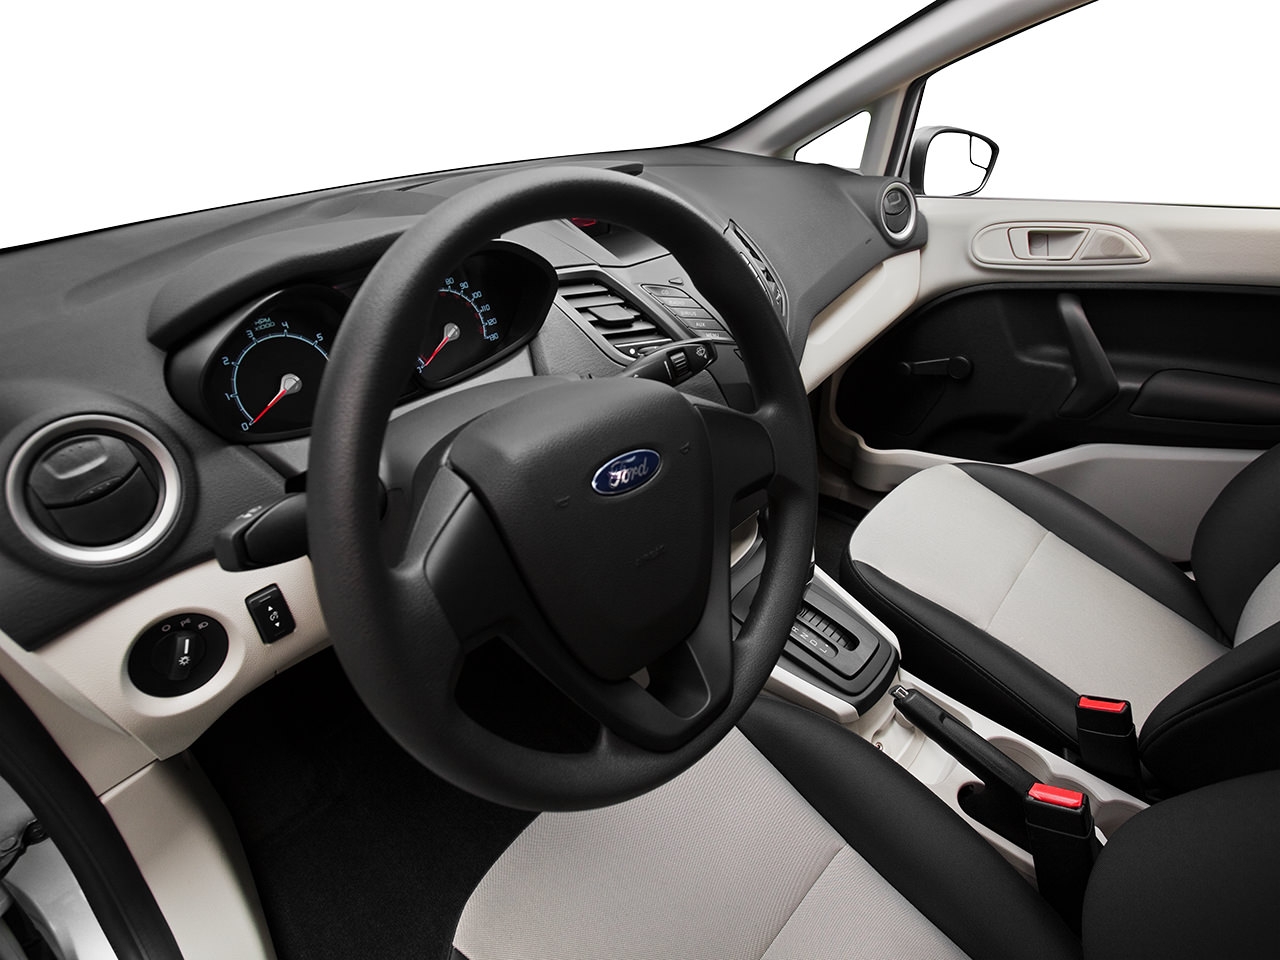 ford fiesta 2012 interior